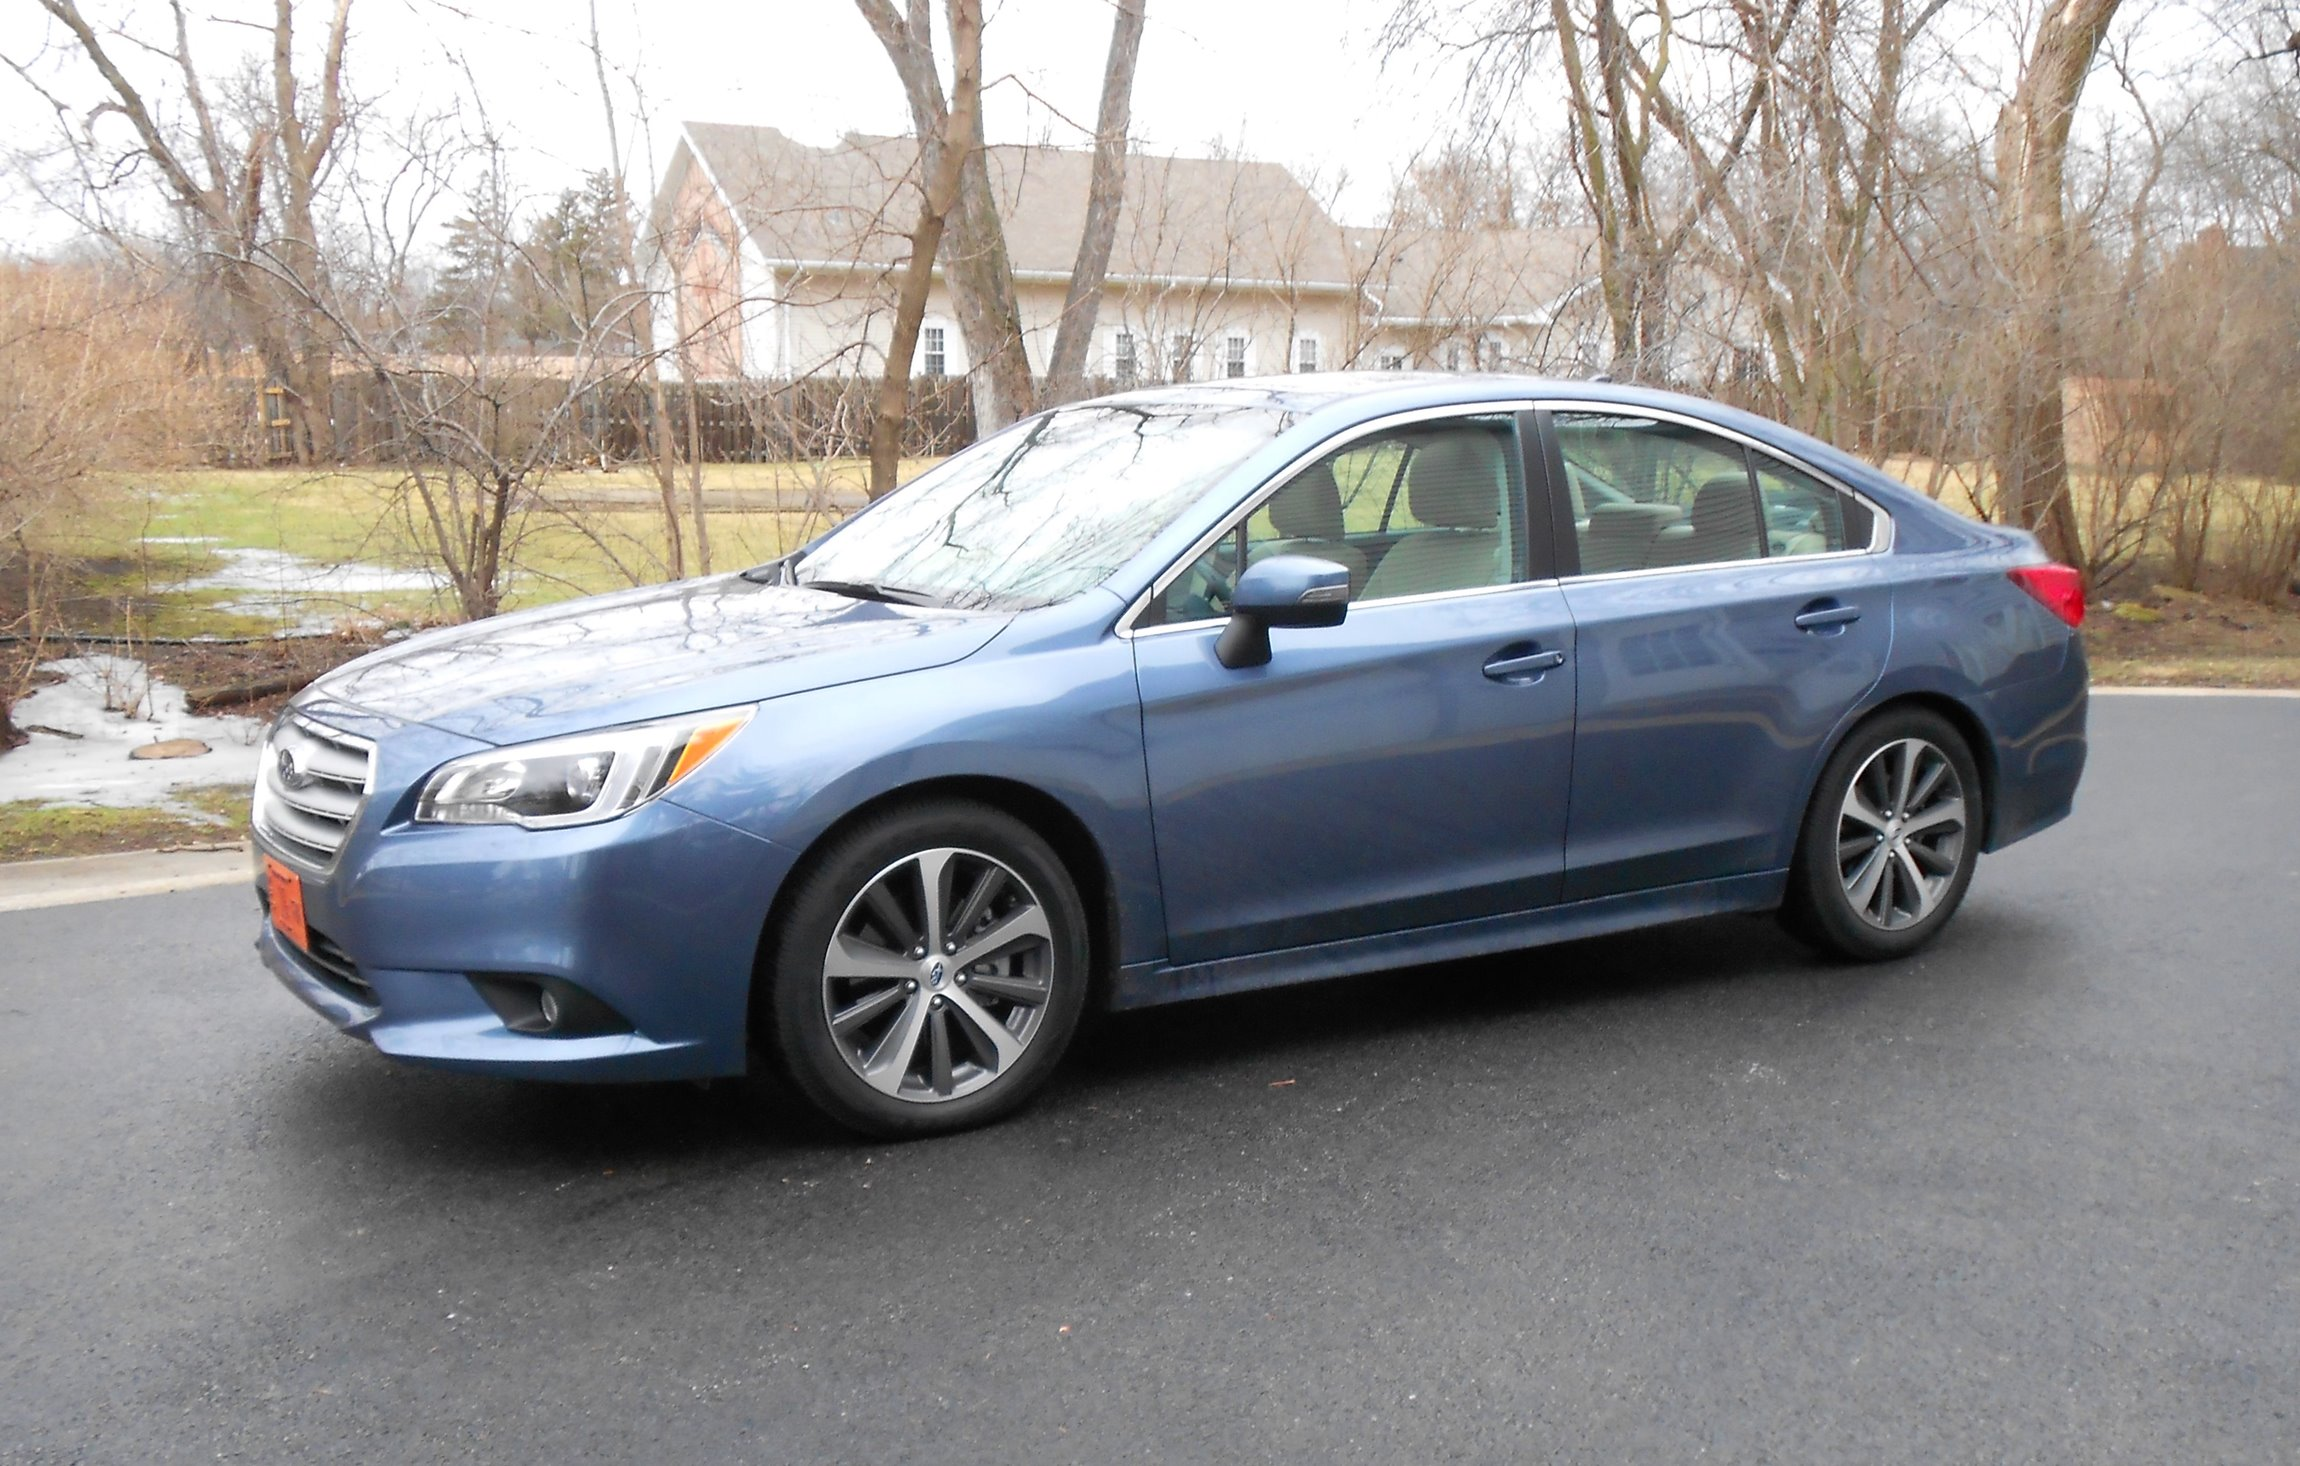 Road Test Review - 2016 Subaru Legacy 3.6R Limited